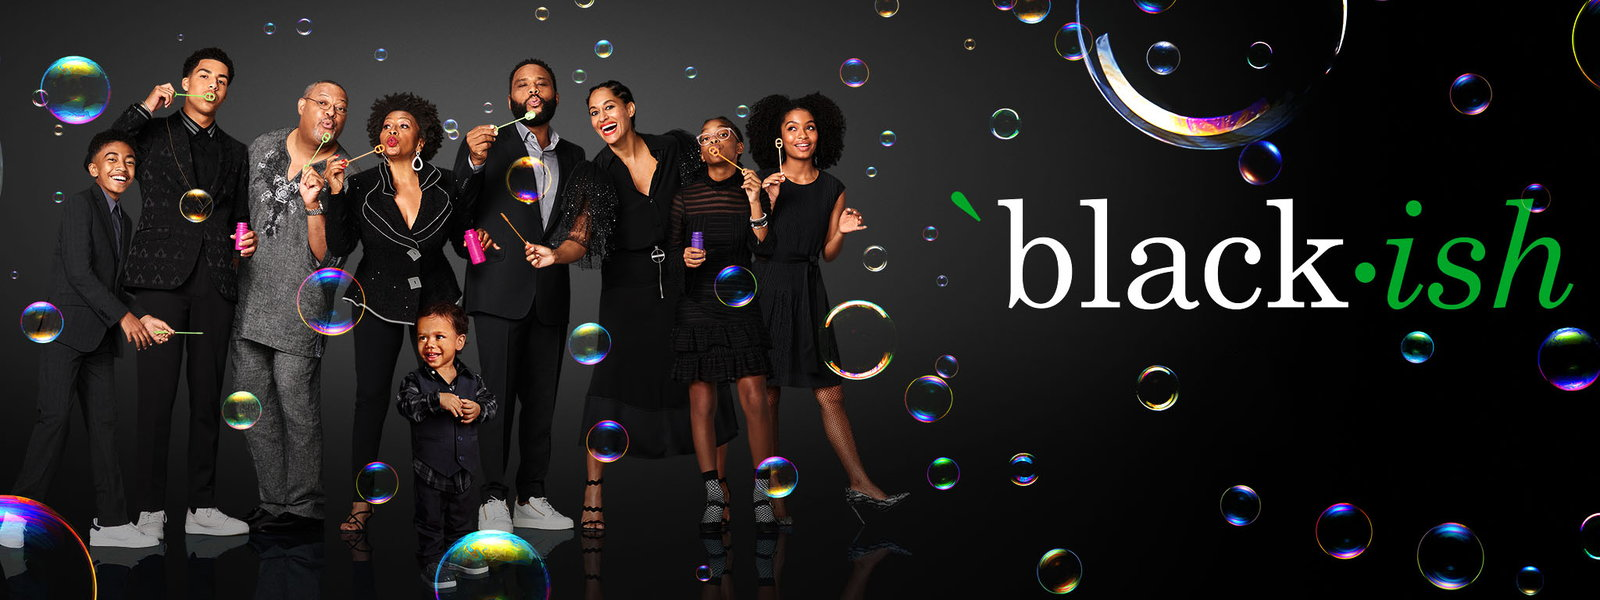 watch black ish online stream on hulu - Watch Halloween 5 Online Free Full Movie